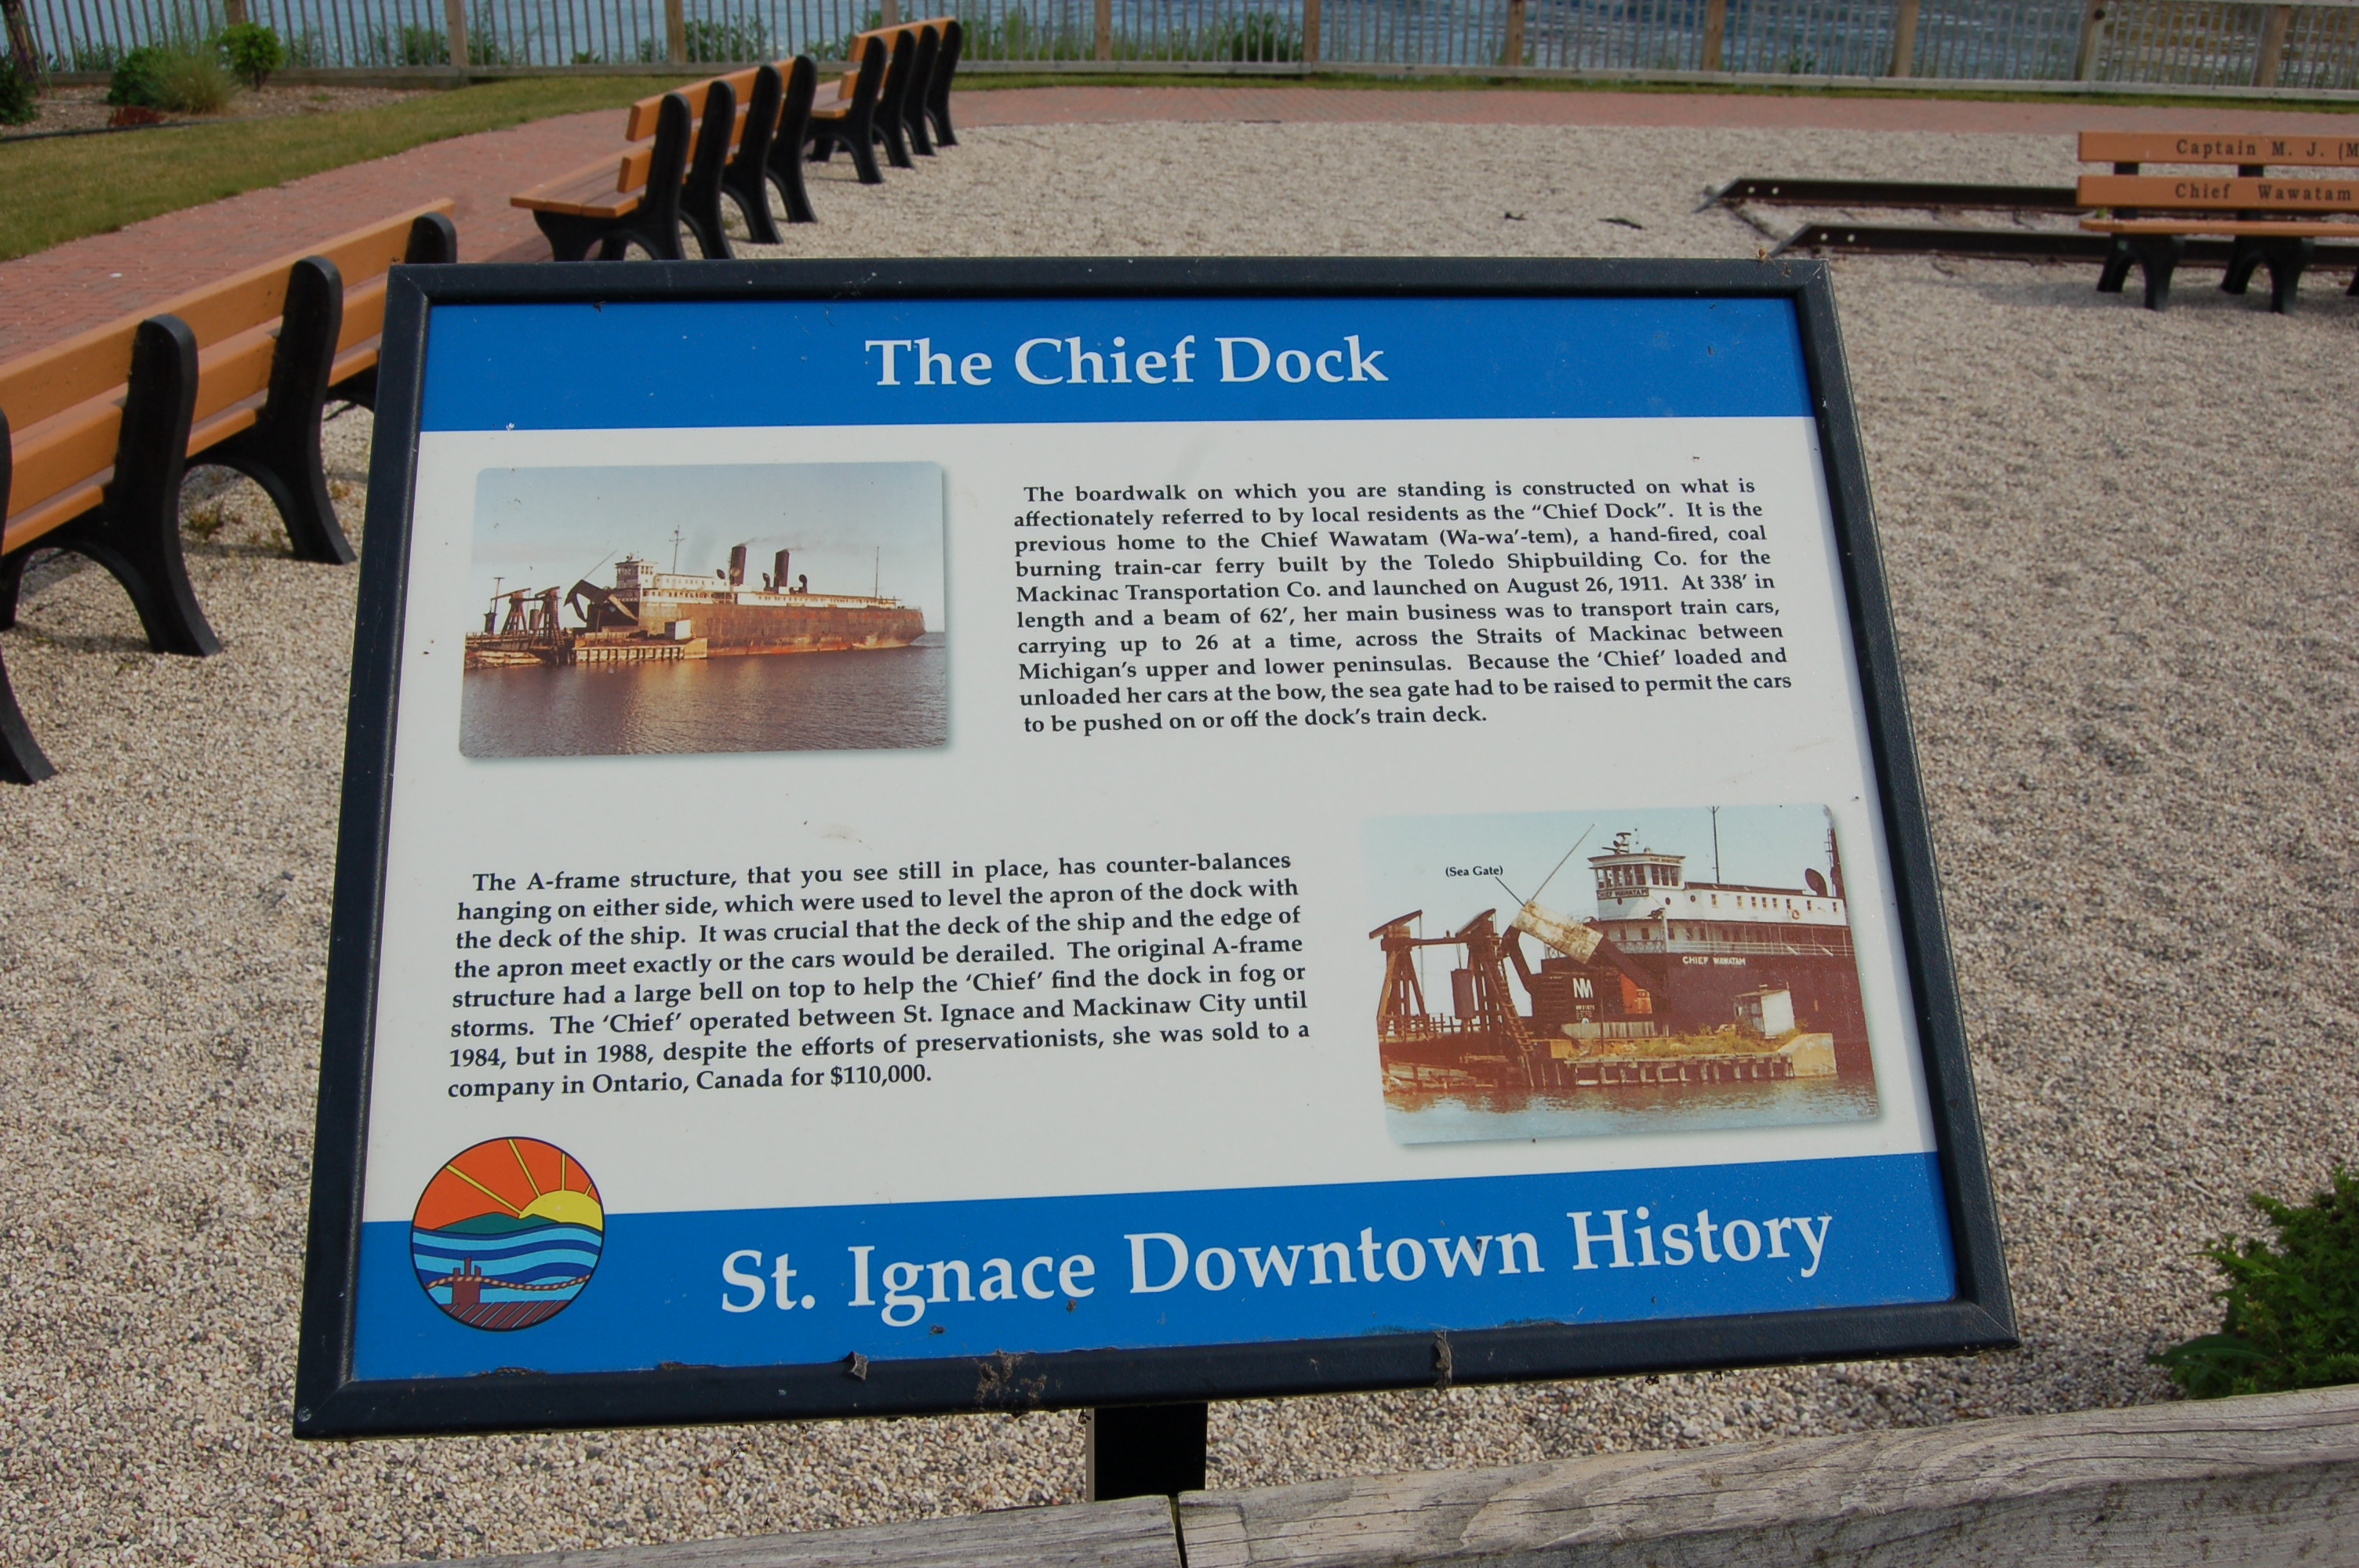 The Chief Dock St. Ignace